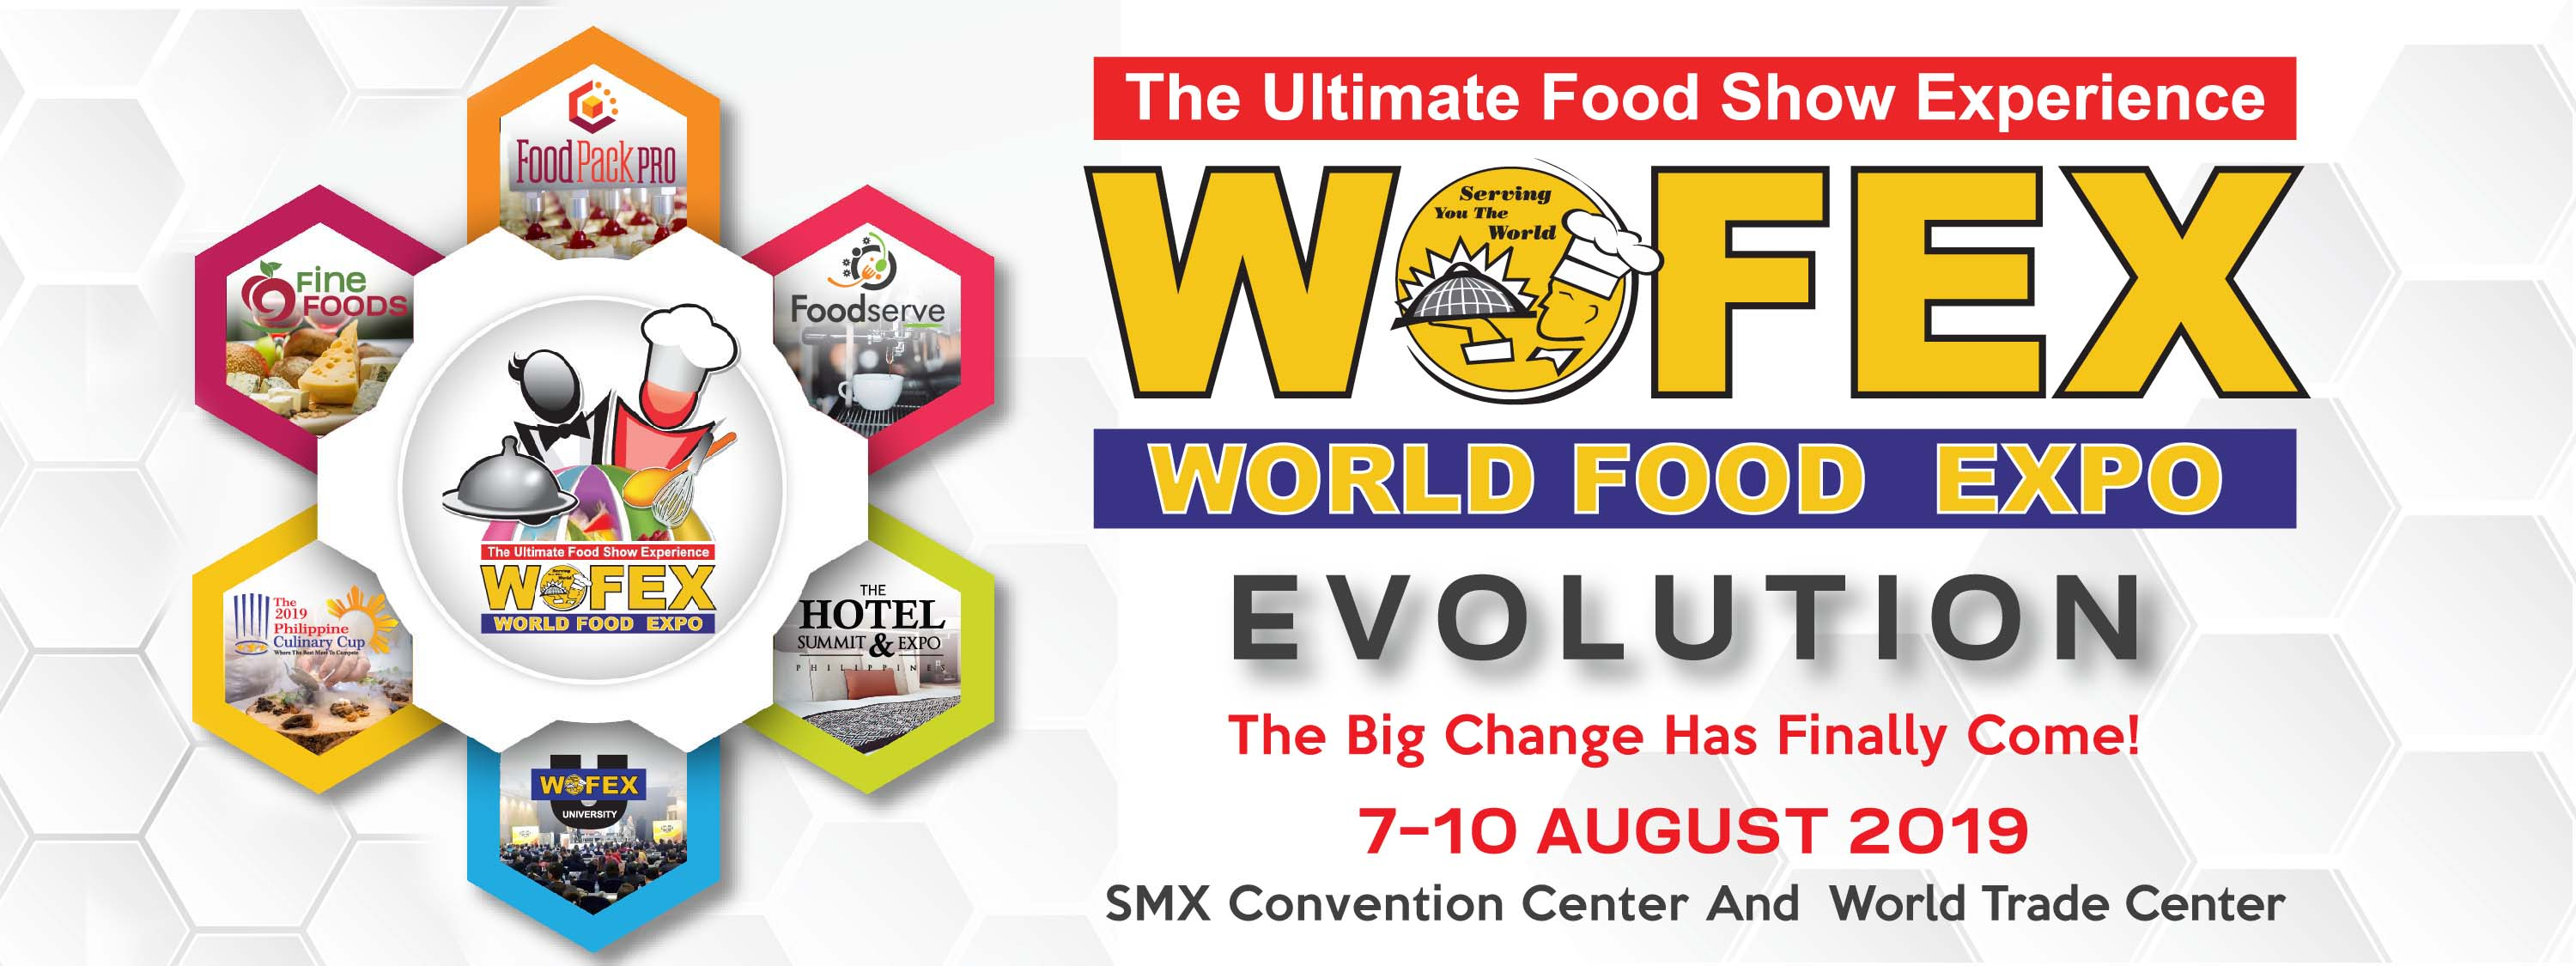 Wofex 2019 World Food Expo